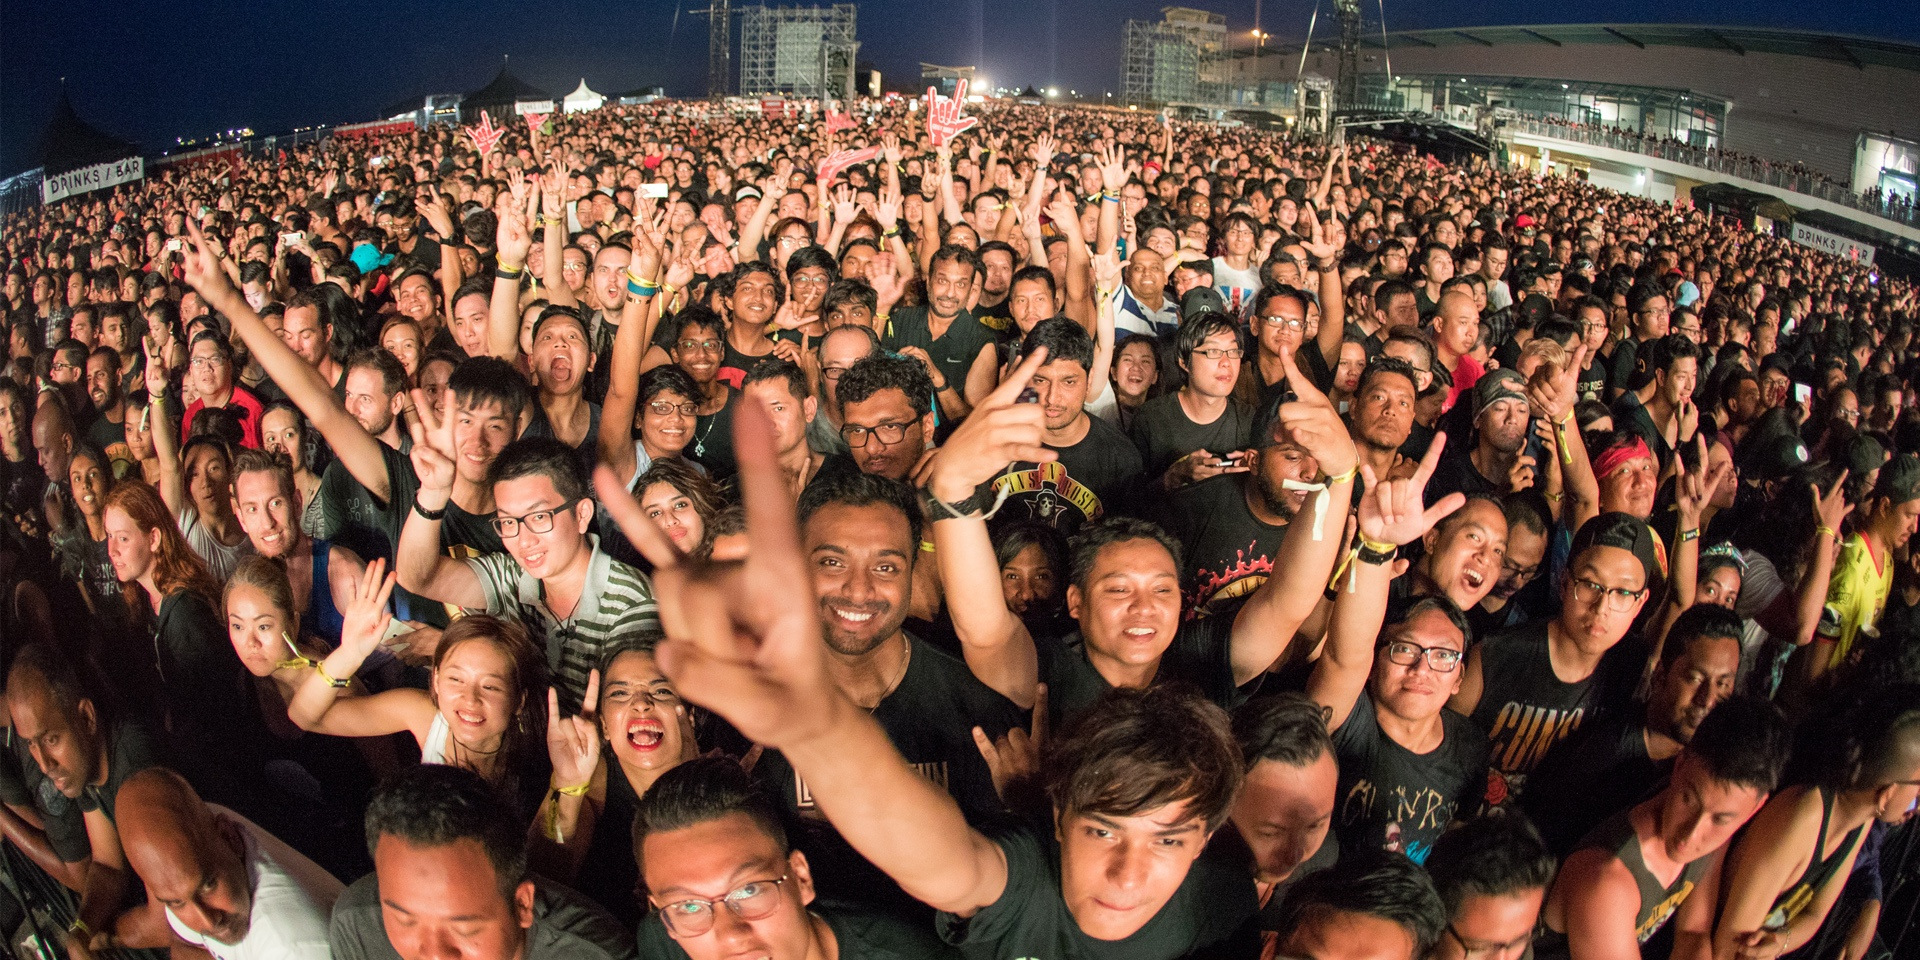 The company behind the RFID tags at Guns N' Roses in Singapore speak out